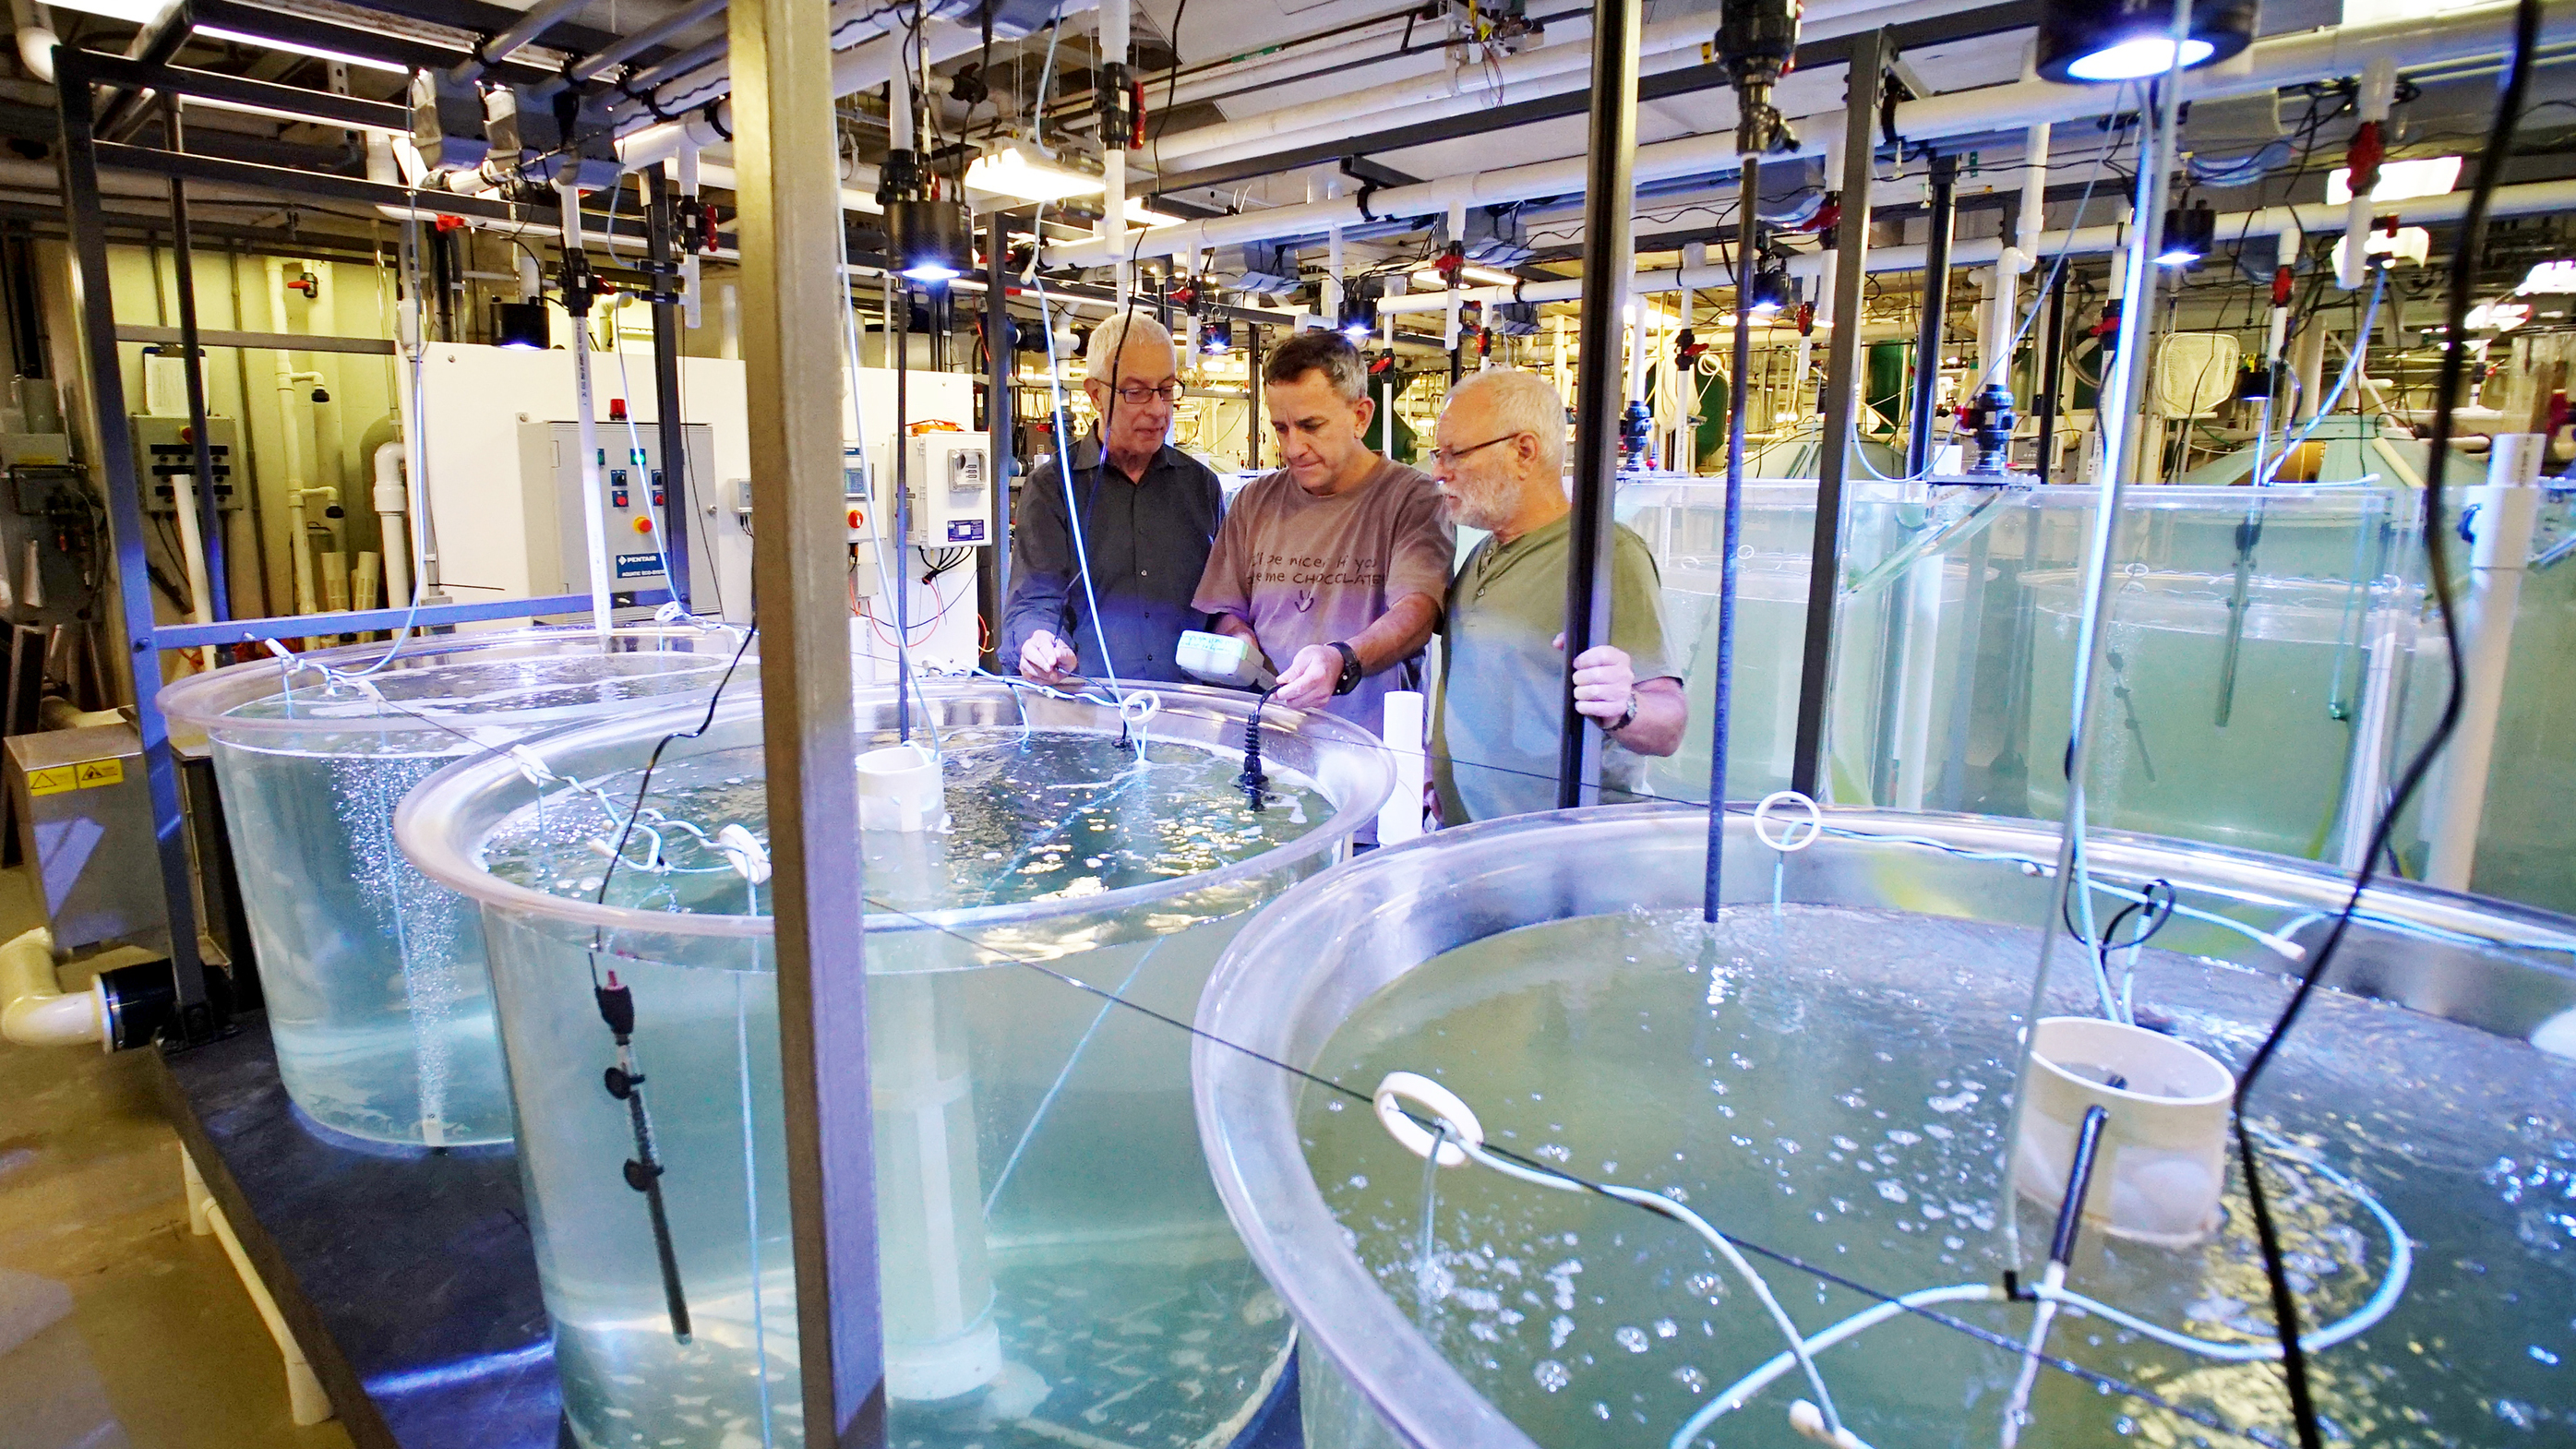 Yonathan Zohar, Jorge Gomezjurado and Odi Zmora check on bluefin tuna larvae in tanks at the University of Maryland Baltimore County's Institute of Marine and Environmental Technology. Photo: Courtesy of Yonathan Zohar